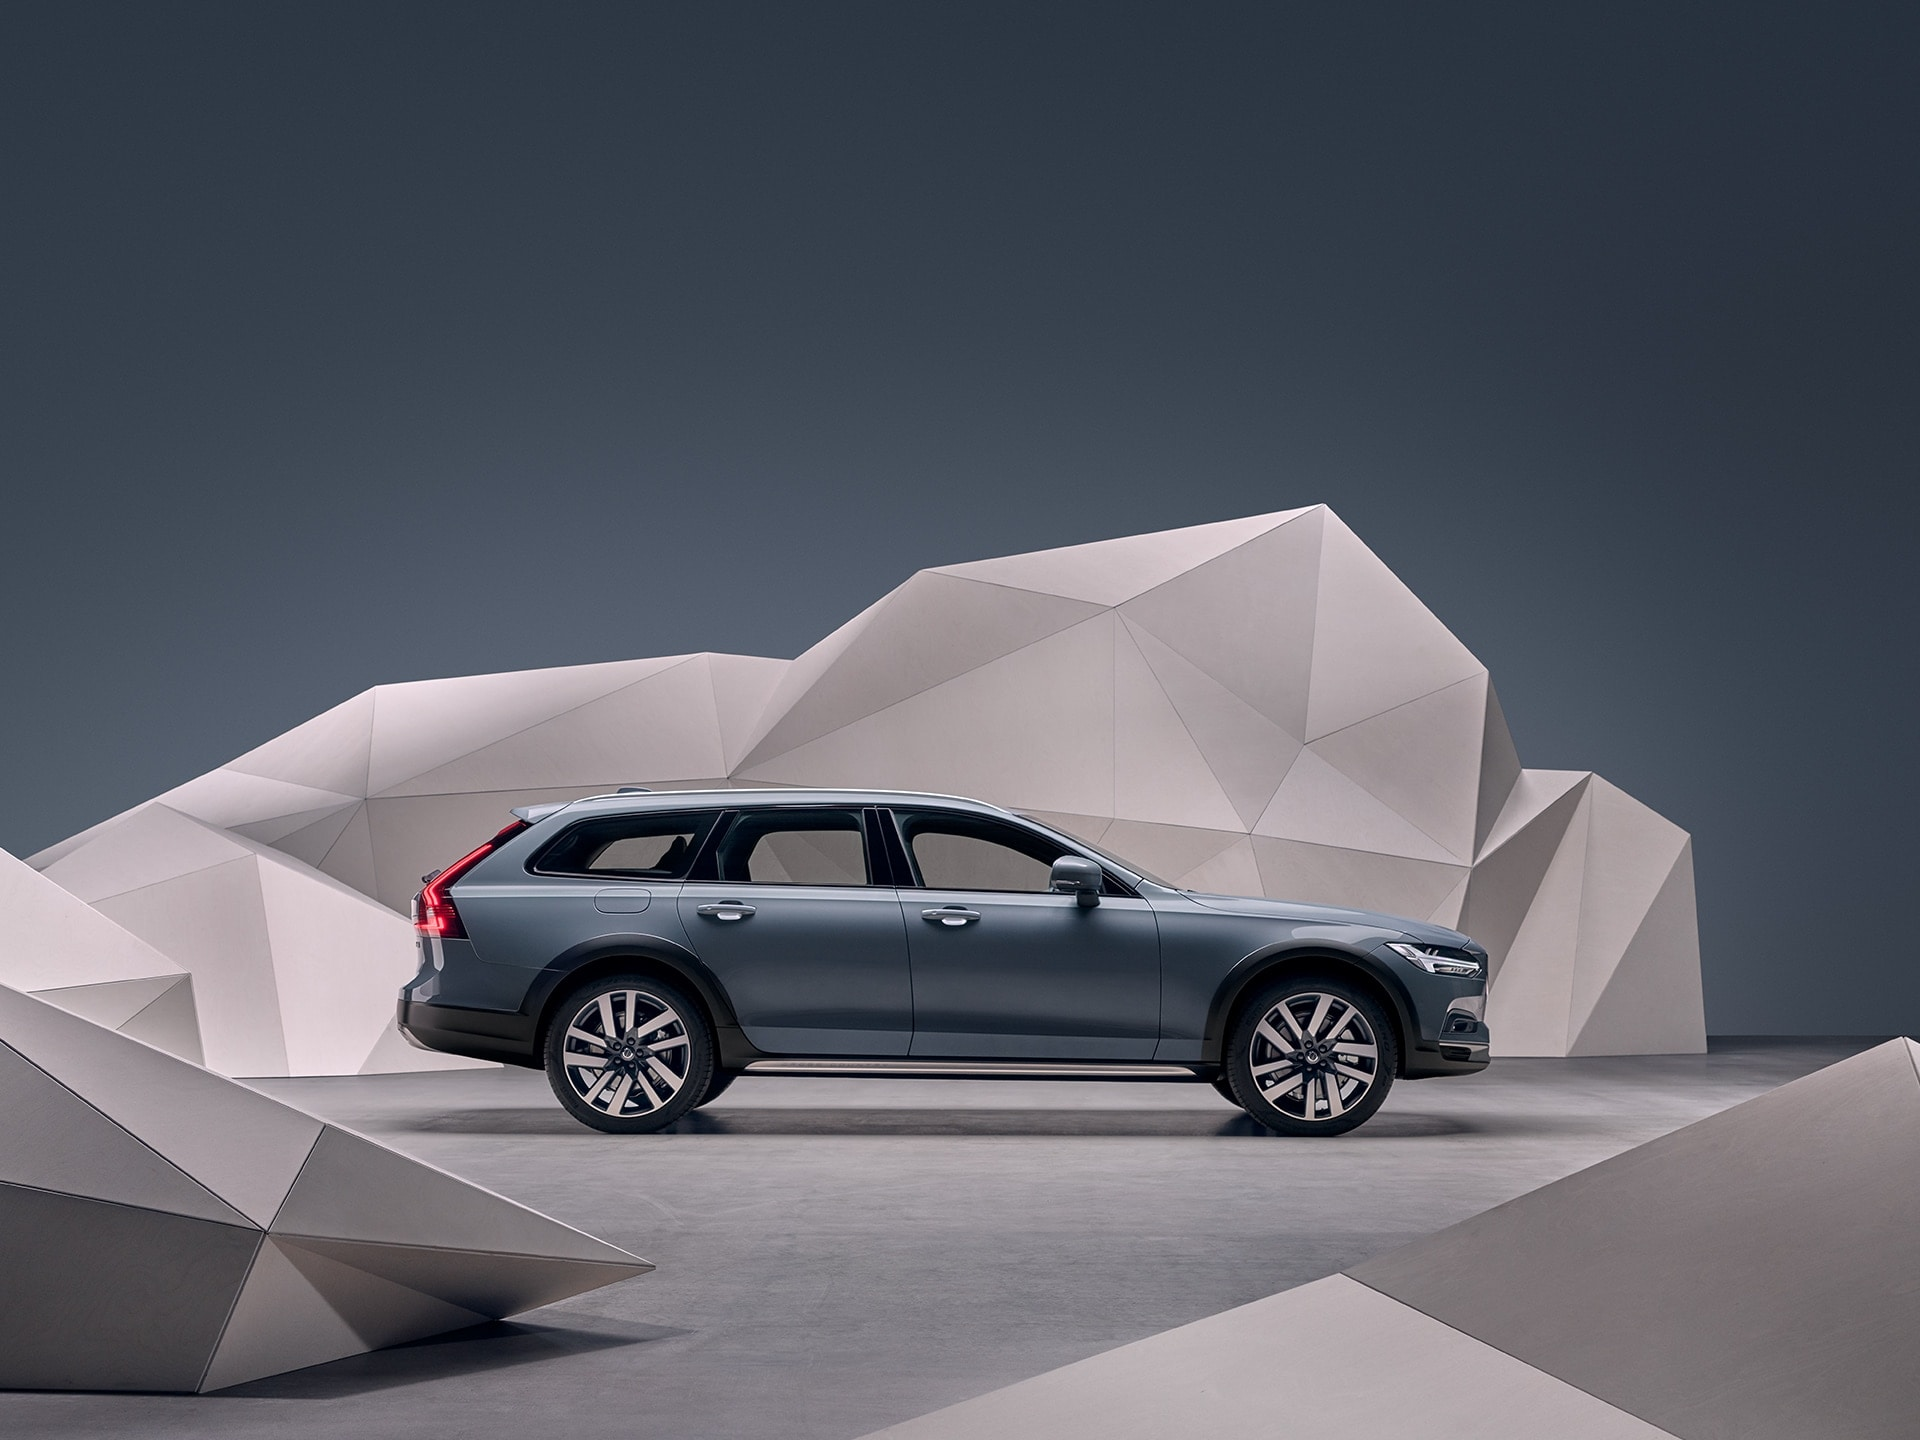 Volvo V90 Cross Country Mussel Blue Metallic devant un mur artistique